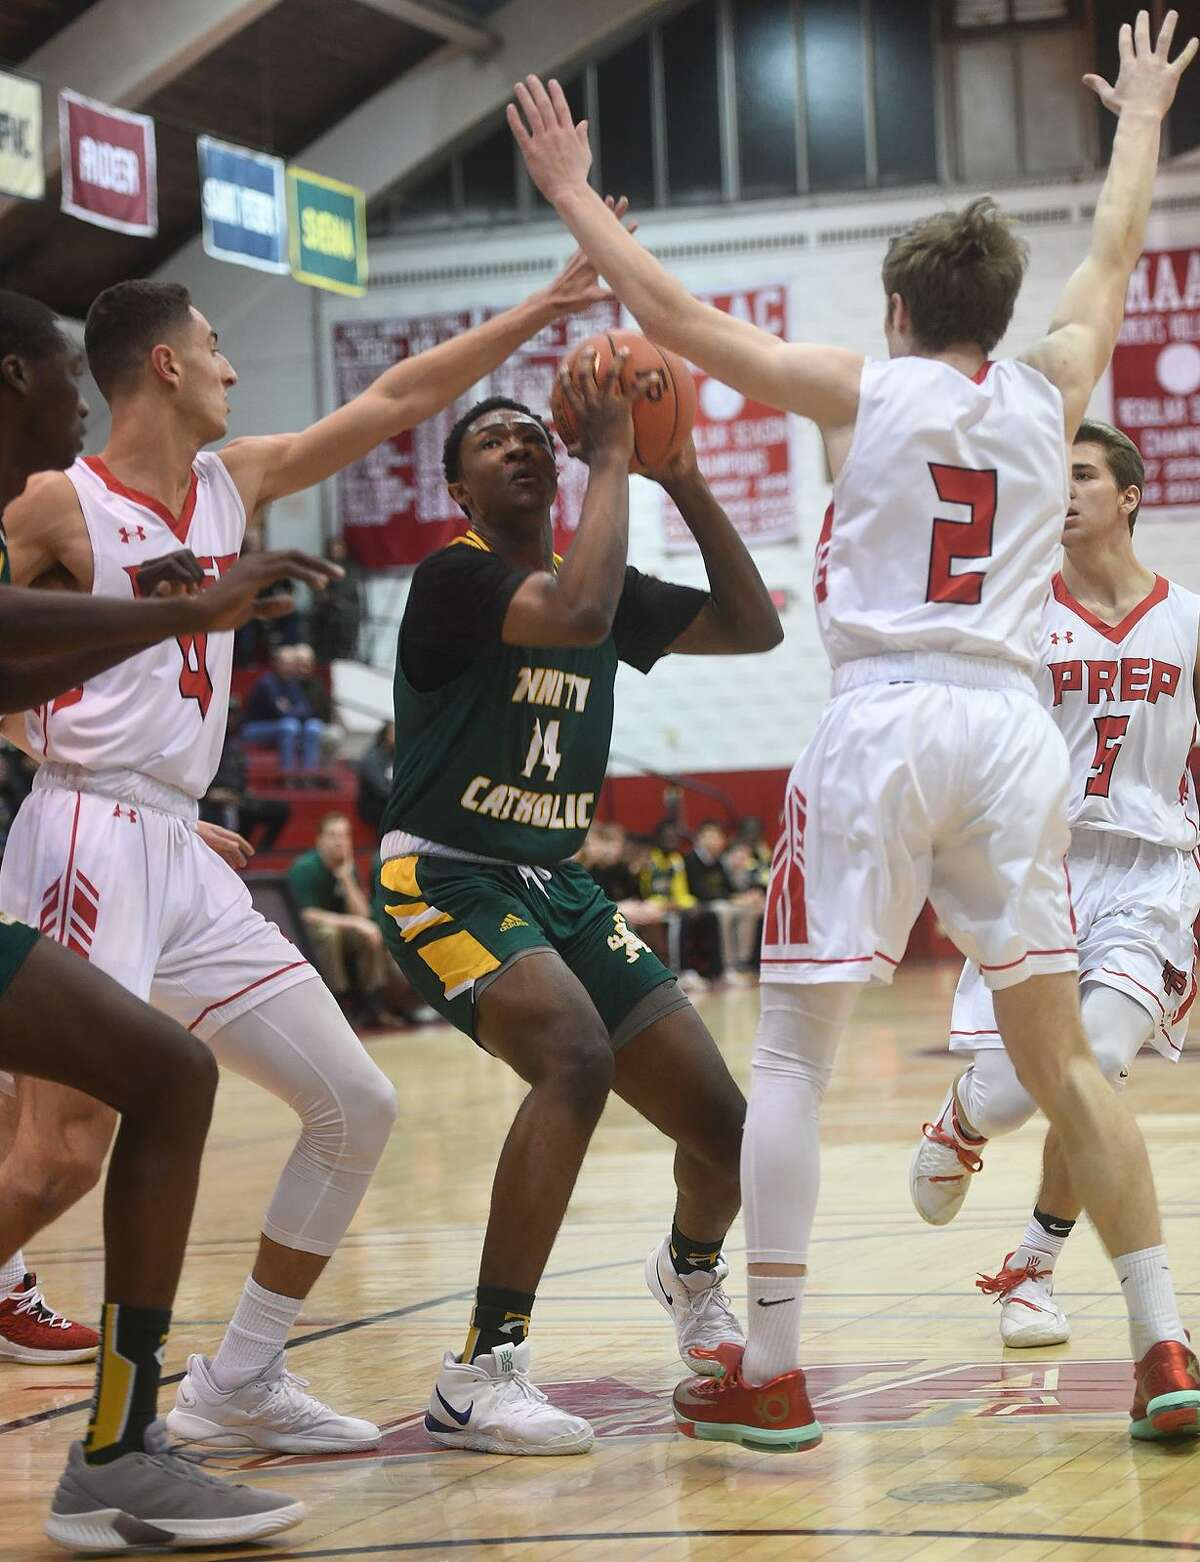 Trinity Catholic's Rahsen Fisher looks to score against Fairfield Prep during Tuesday night's Div. I game at Alumni Hall in Fairfield.